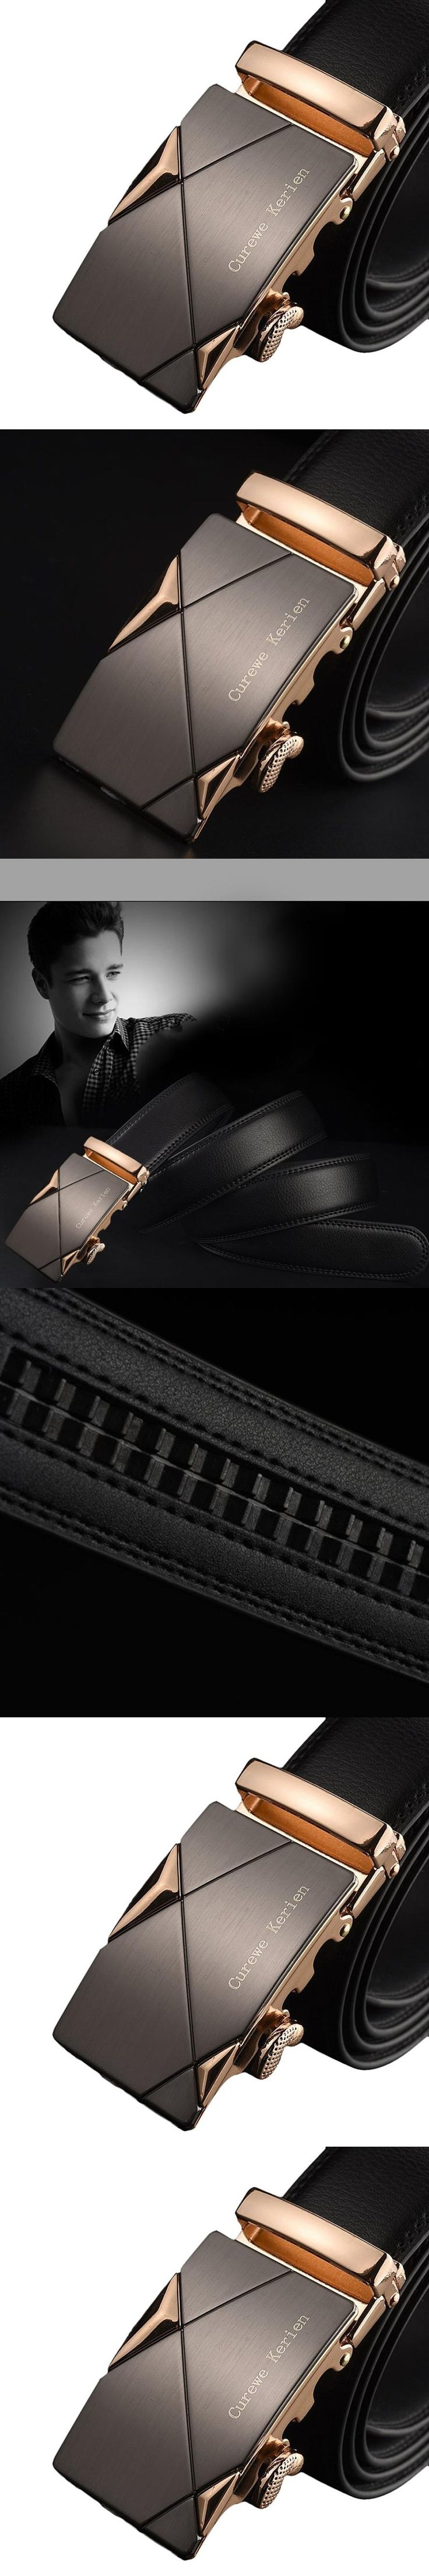 High Recommend Men Leather Automatic Buckle Belts Luxury Waist Strap Belt Waistband ceinture homme cintos para homens kemer